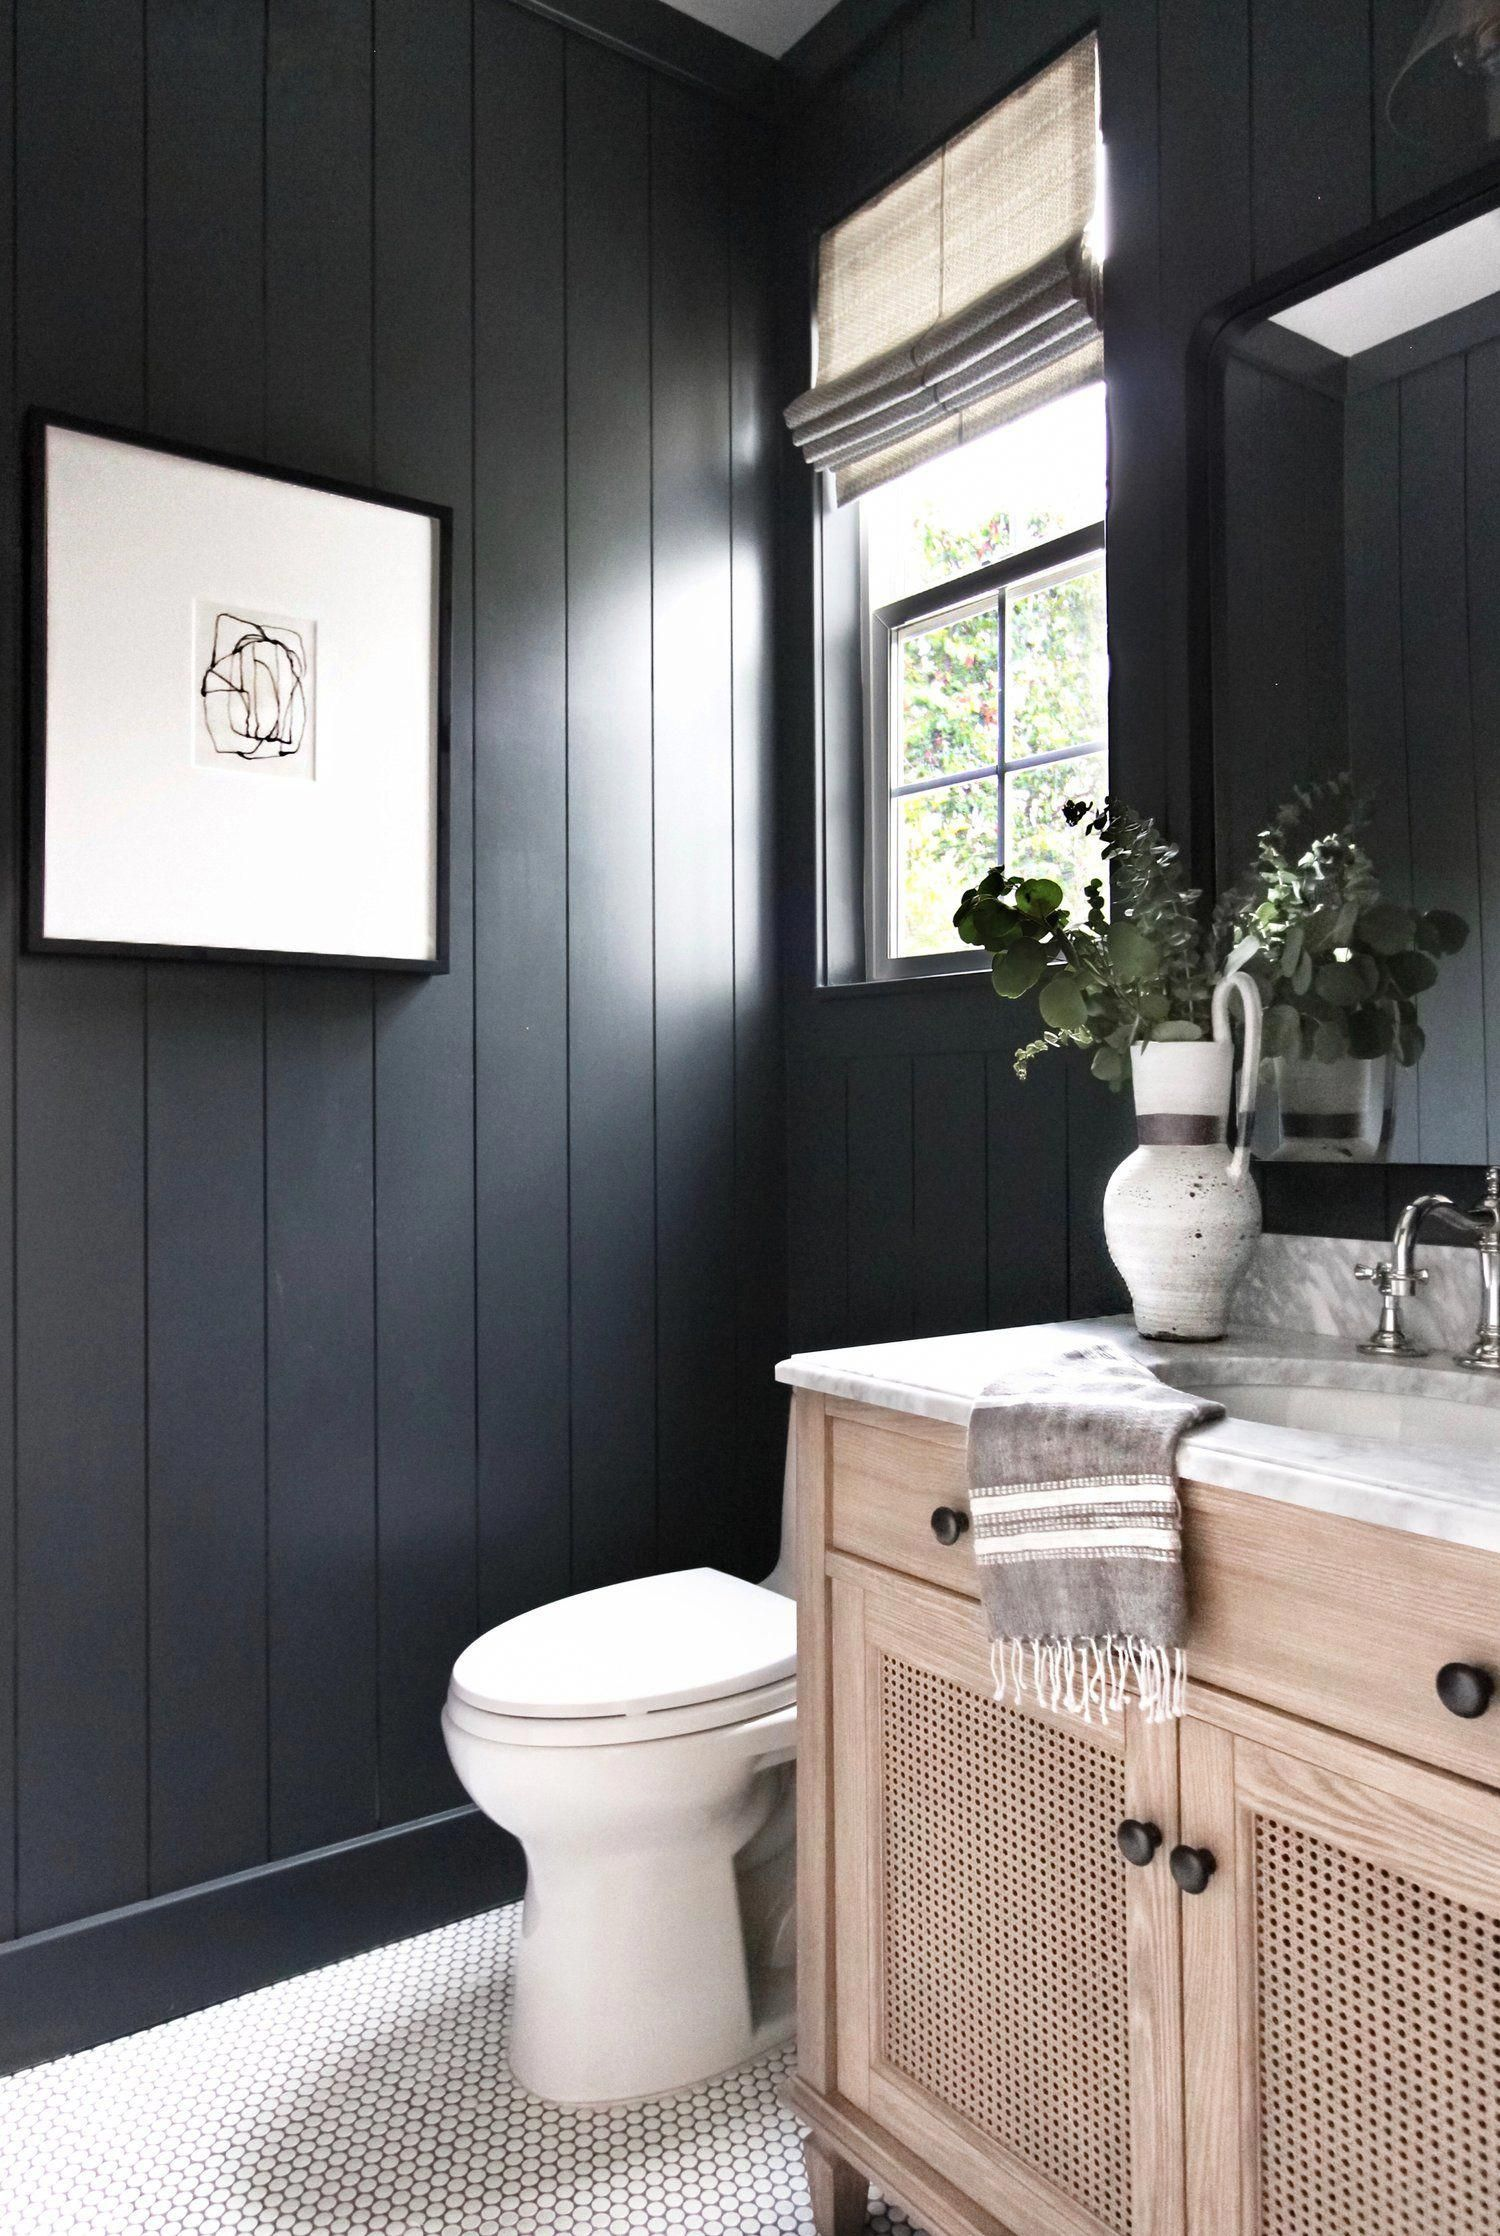 Awesome Black Vertical Shiplap Walls In This Bathroom Or Powder Room With Penny Tile Floor And A Wood Cottage Style Bathrooms Bathroom Interior Black Bathroom